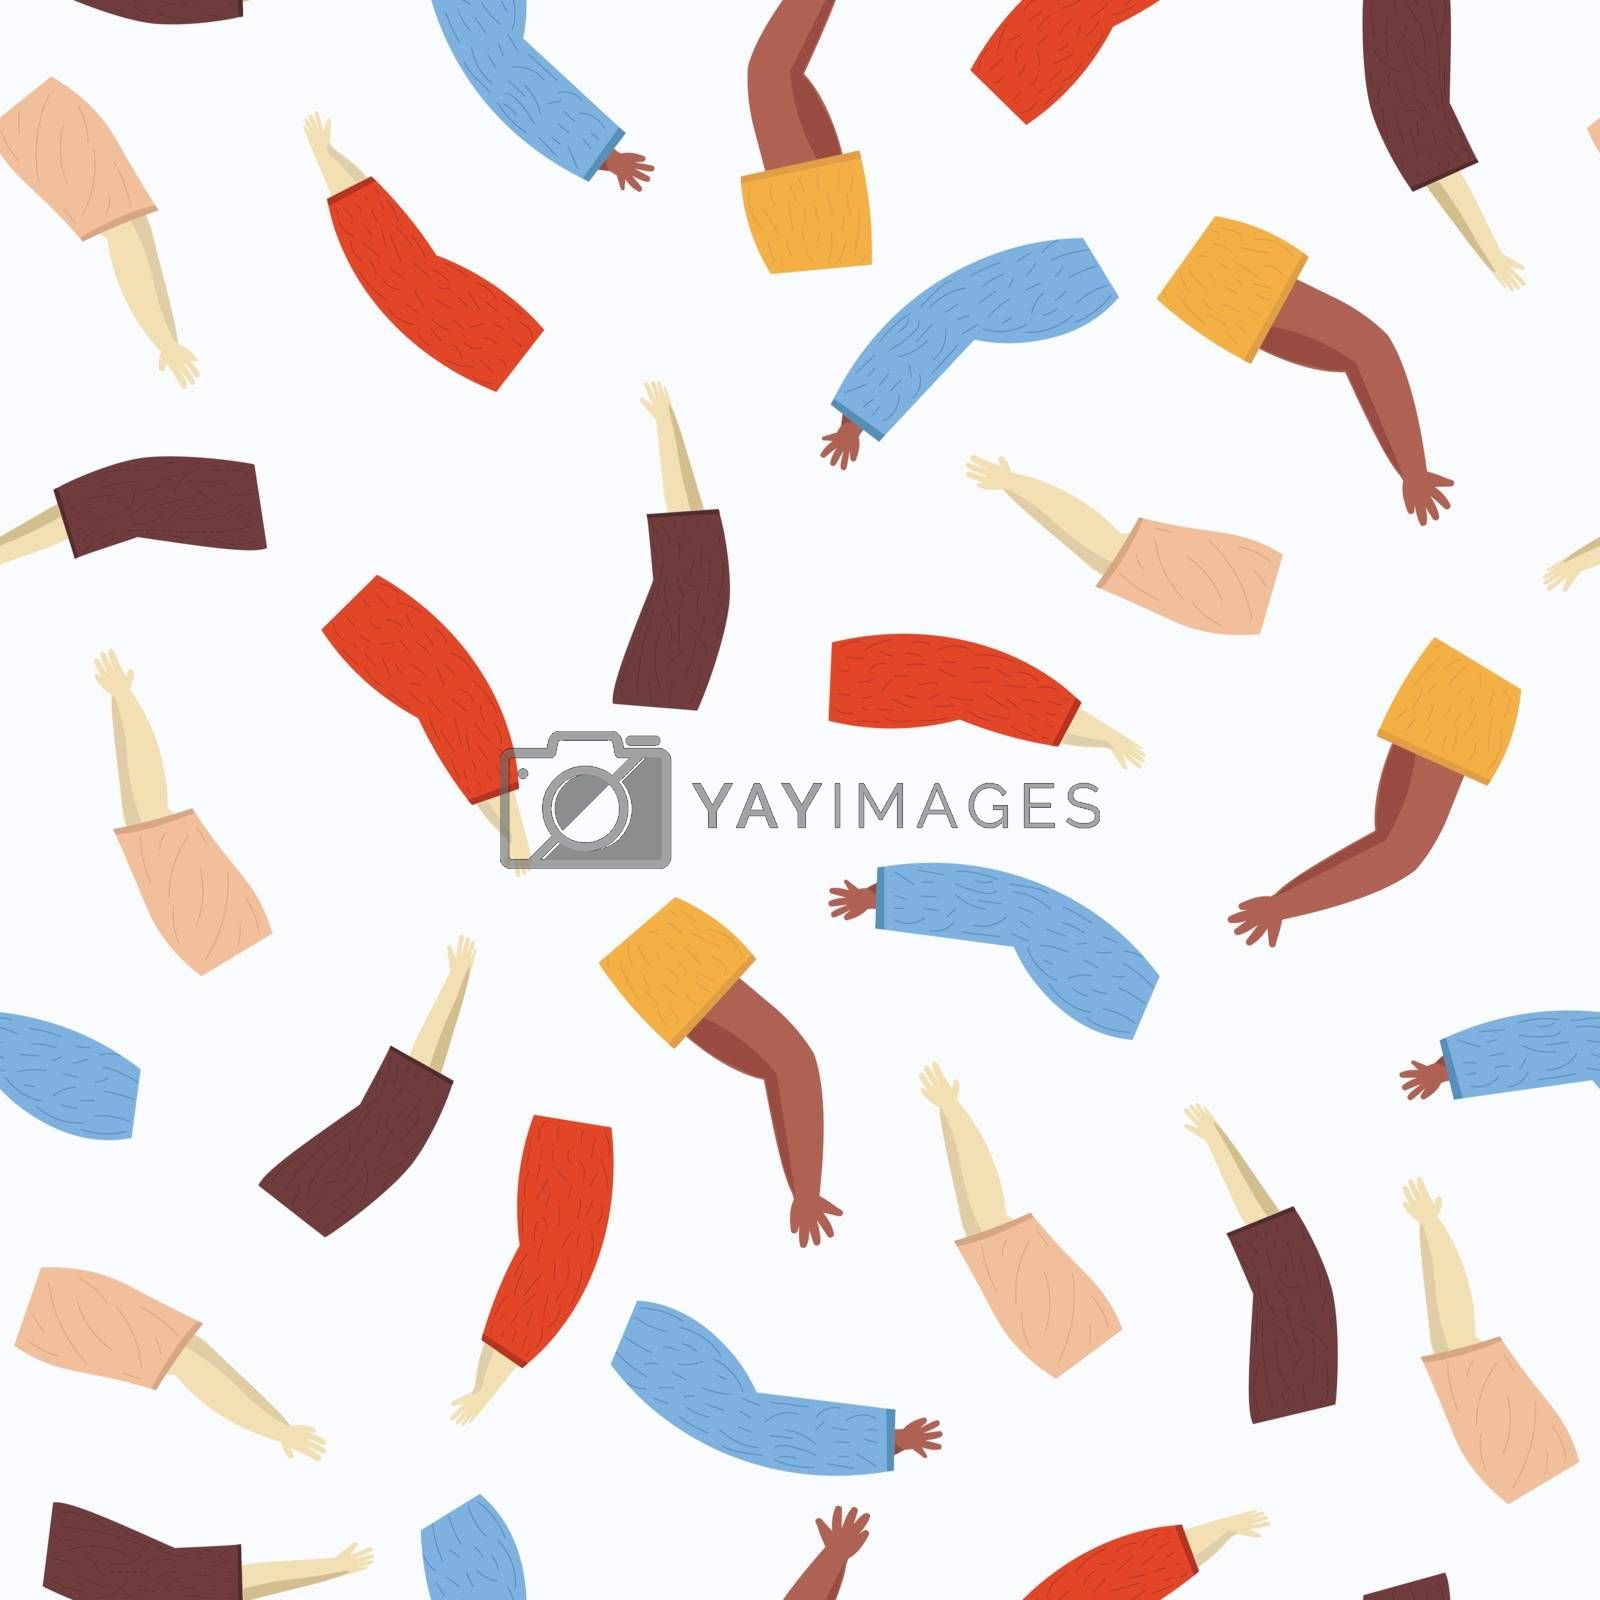 Colorful vector pattern with illustration of a people's hands with different skin color together. Race equality, diversity, tolerance illustration. Can be used for backgrounds or prints